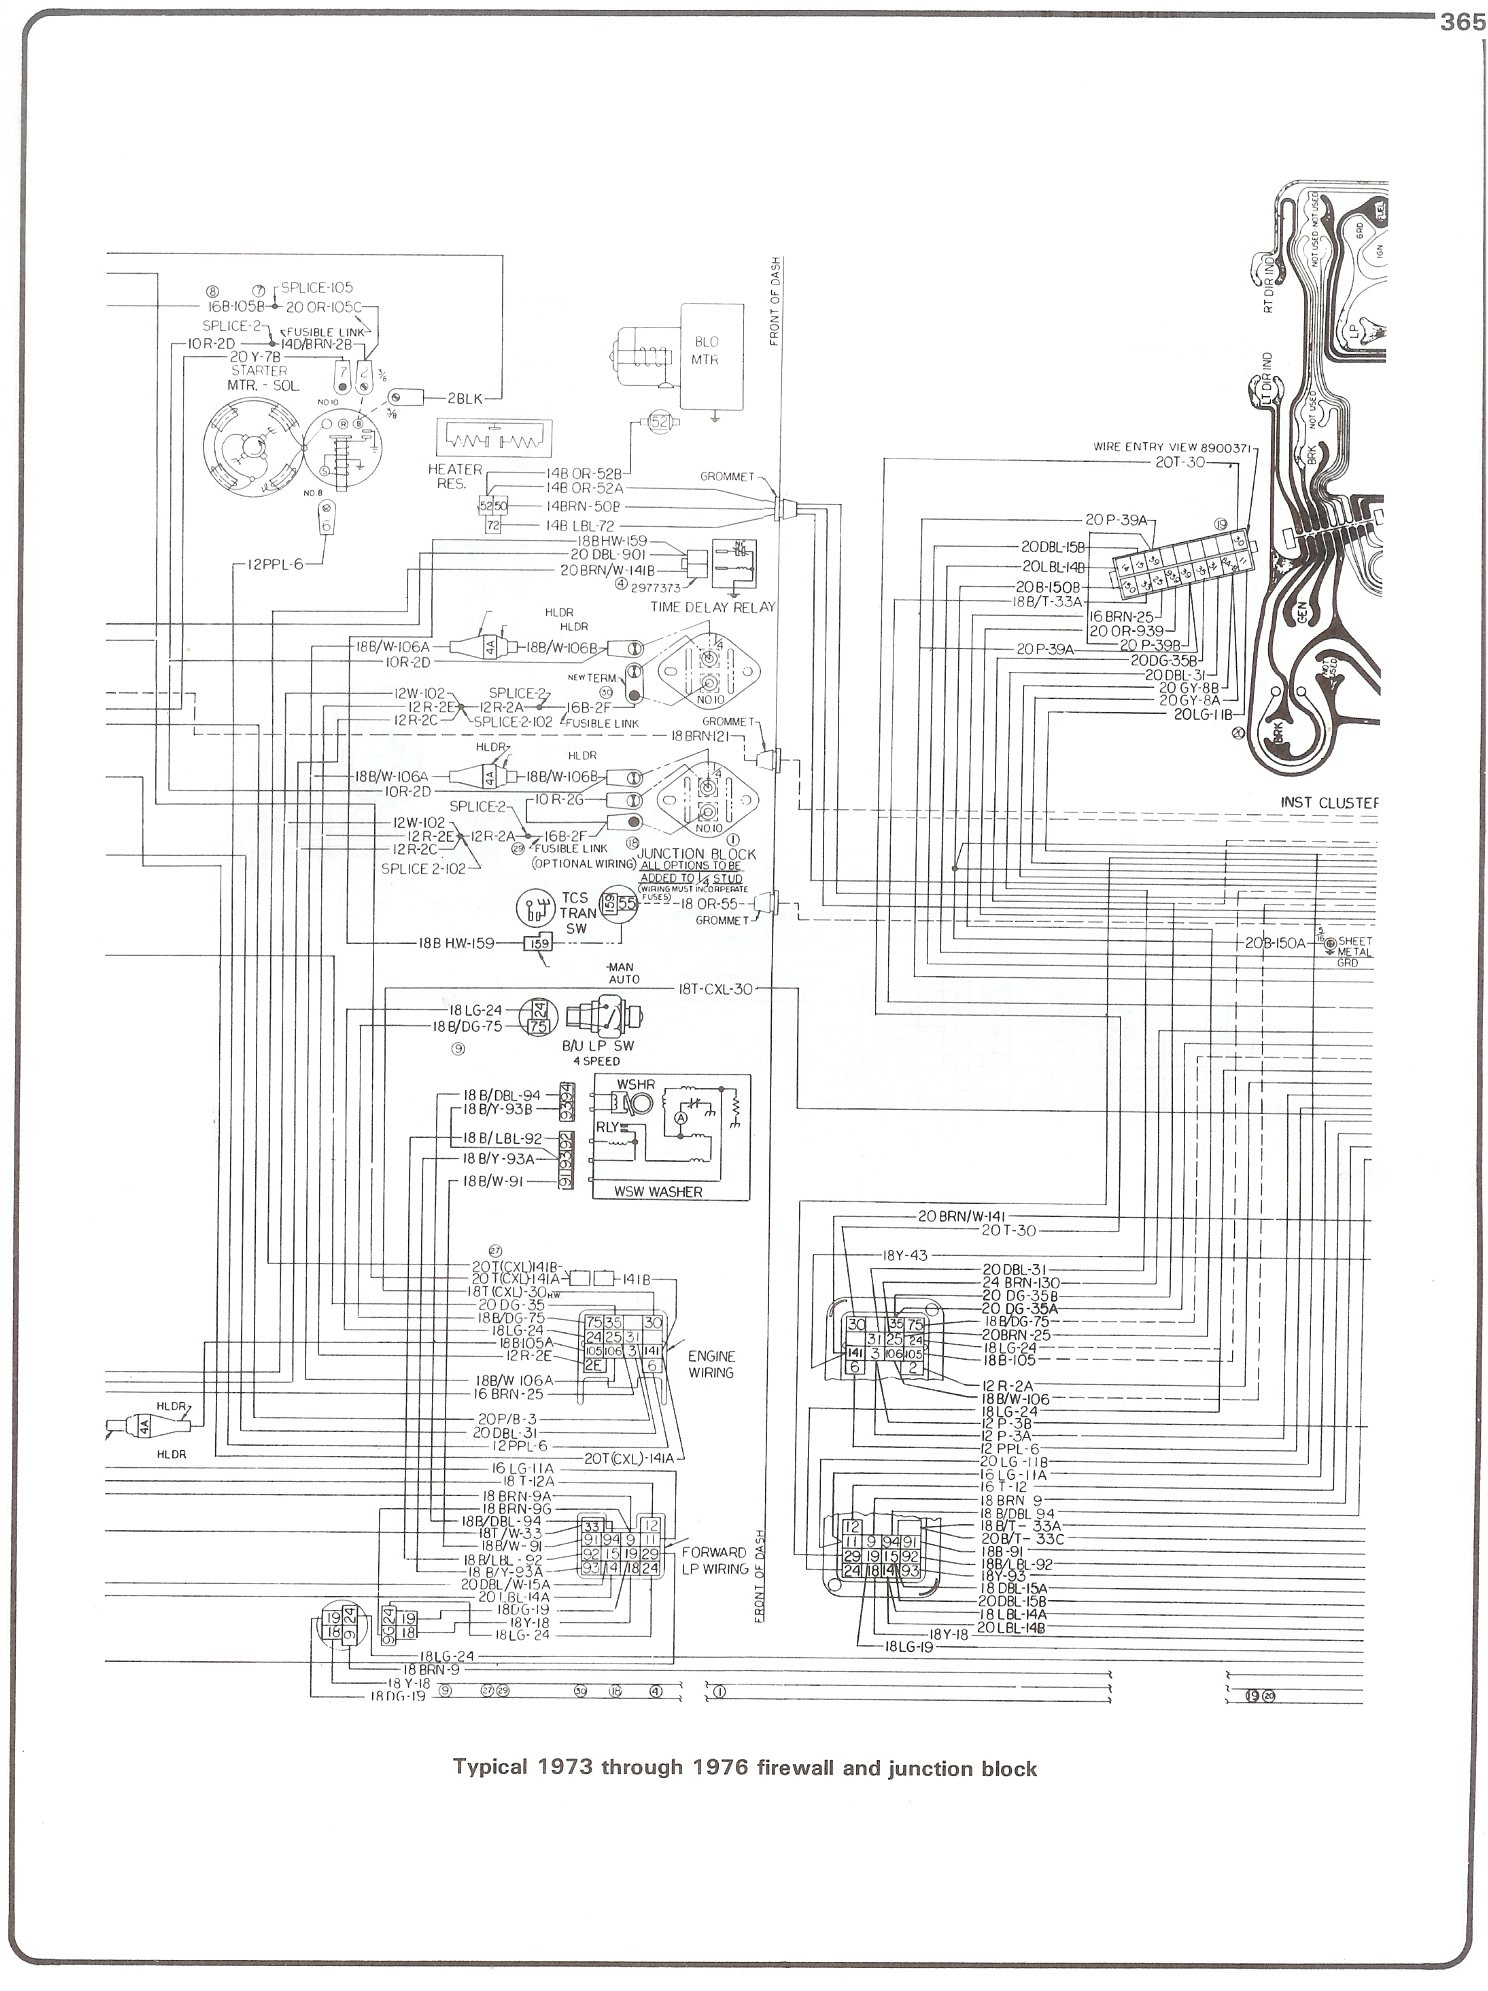 73 76_firewall_junct electrical diagrams chevy only page 2 truck forum 1970 Chevy C10 Fuse Box Diagram at gsmx.co